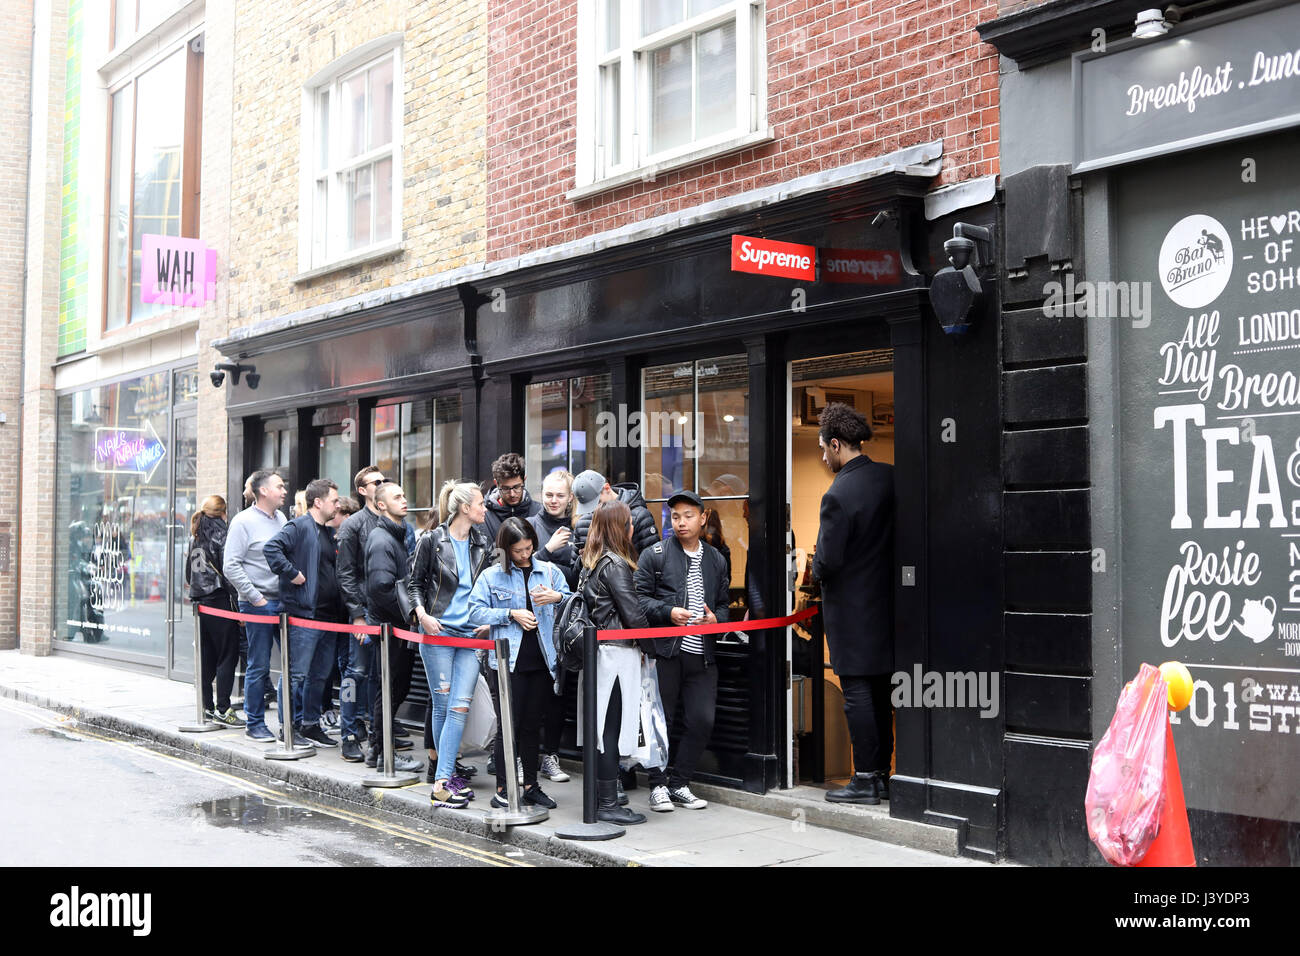 Supreme shop in Soho 5e39c539d4